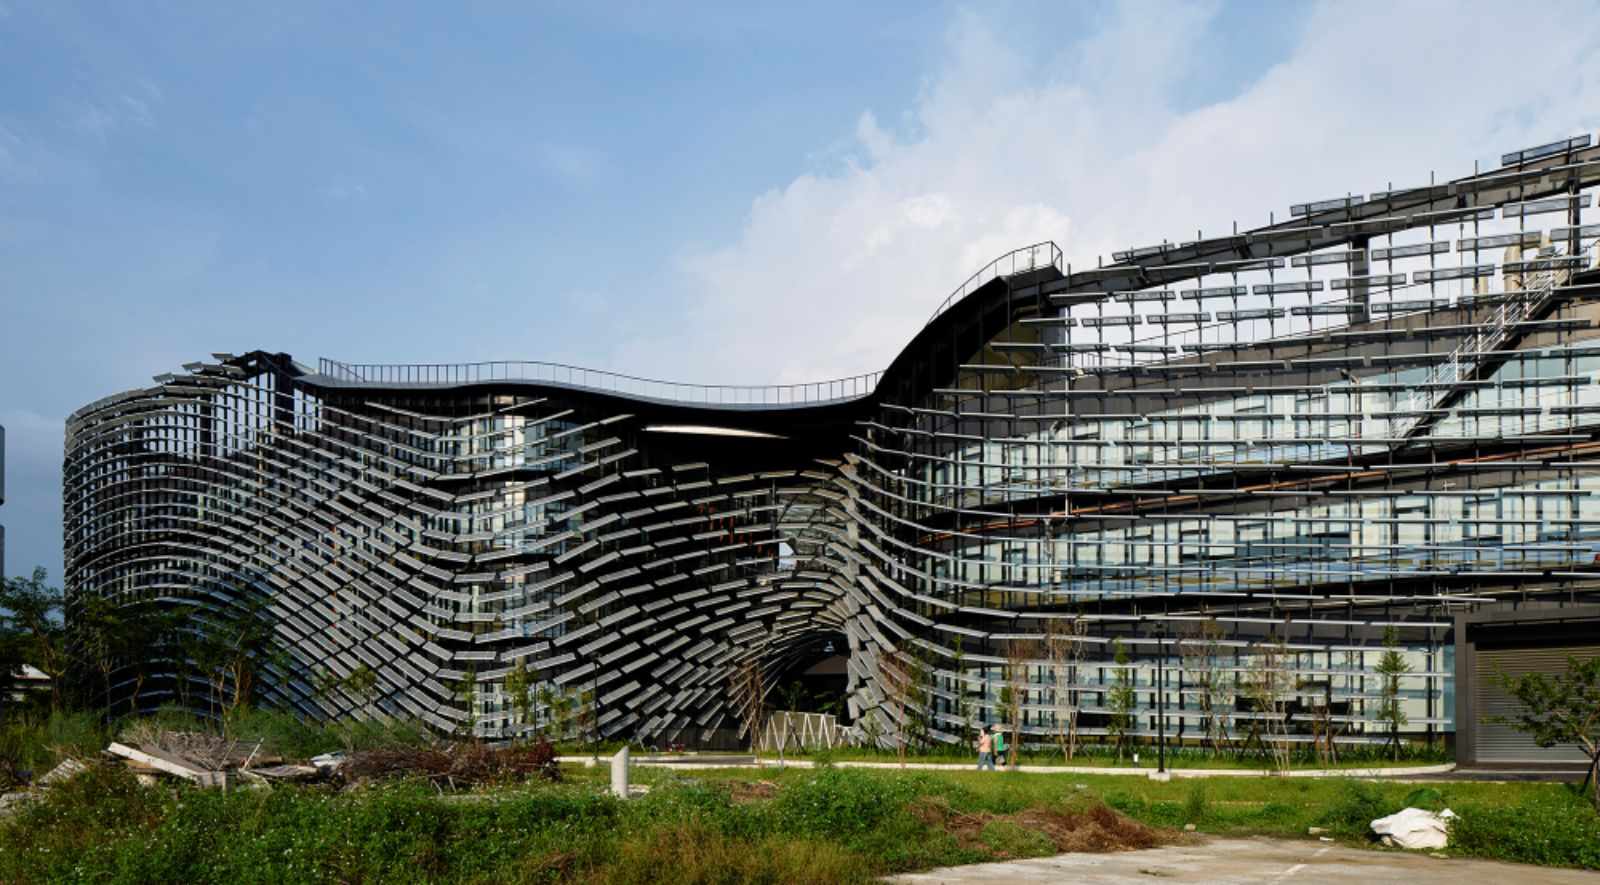 itri exterior design by noiz architects and bio